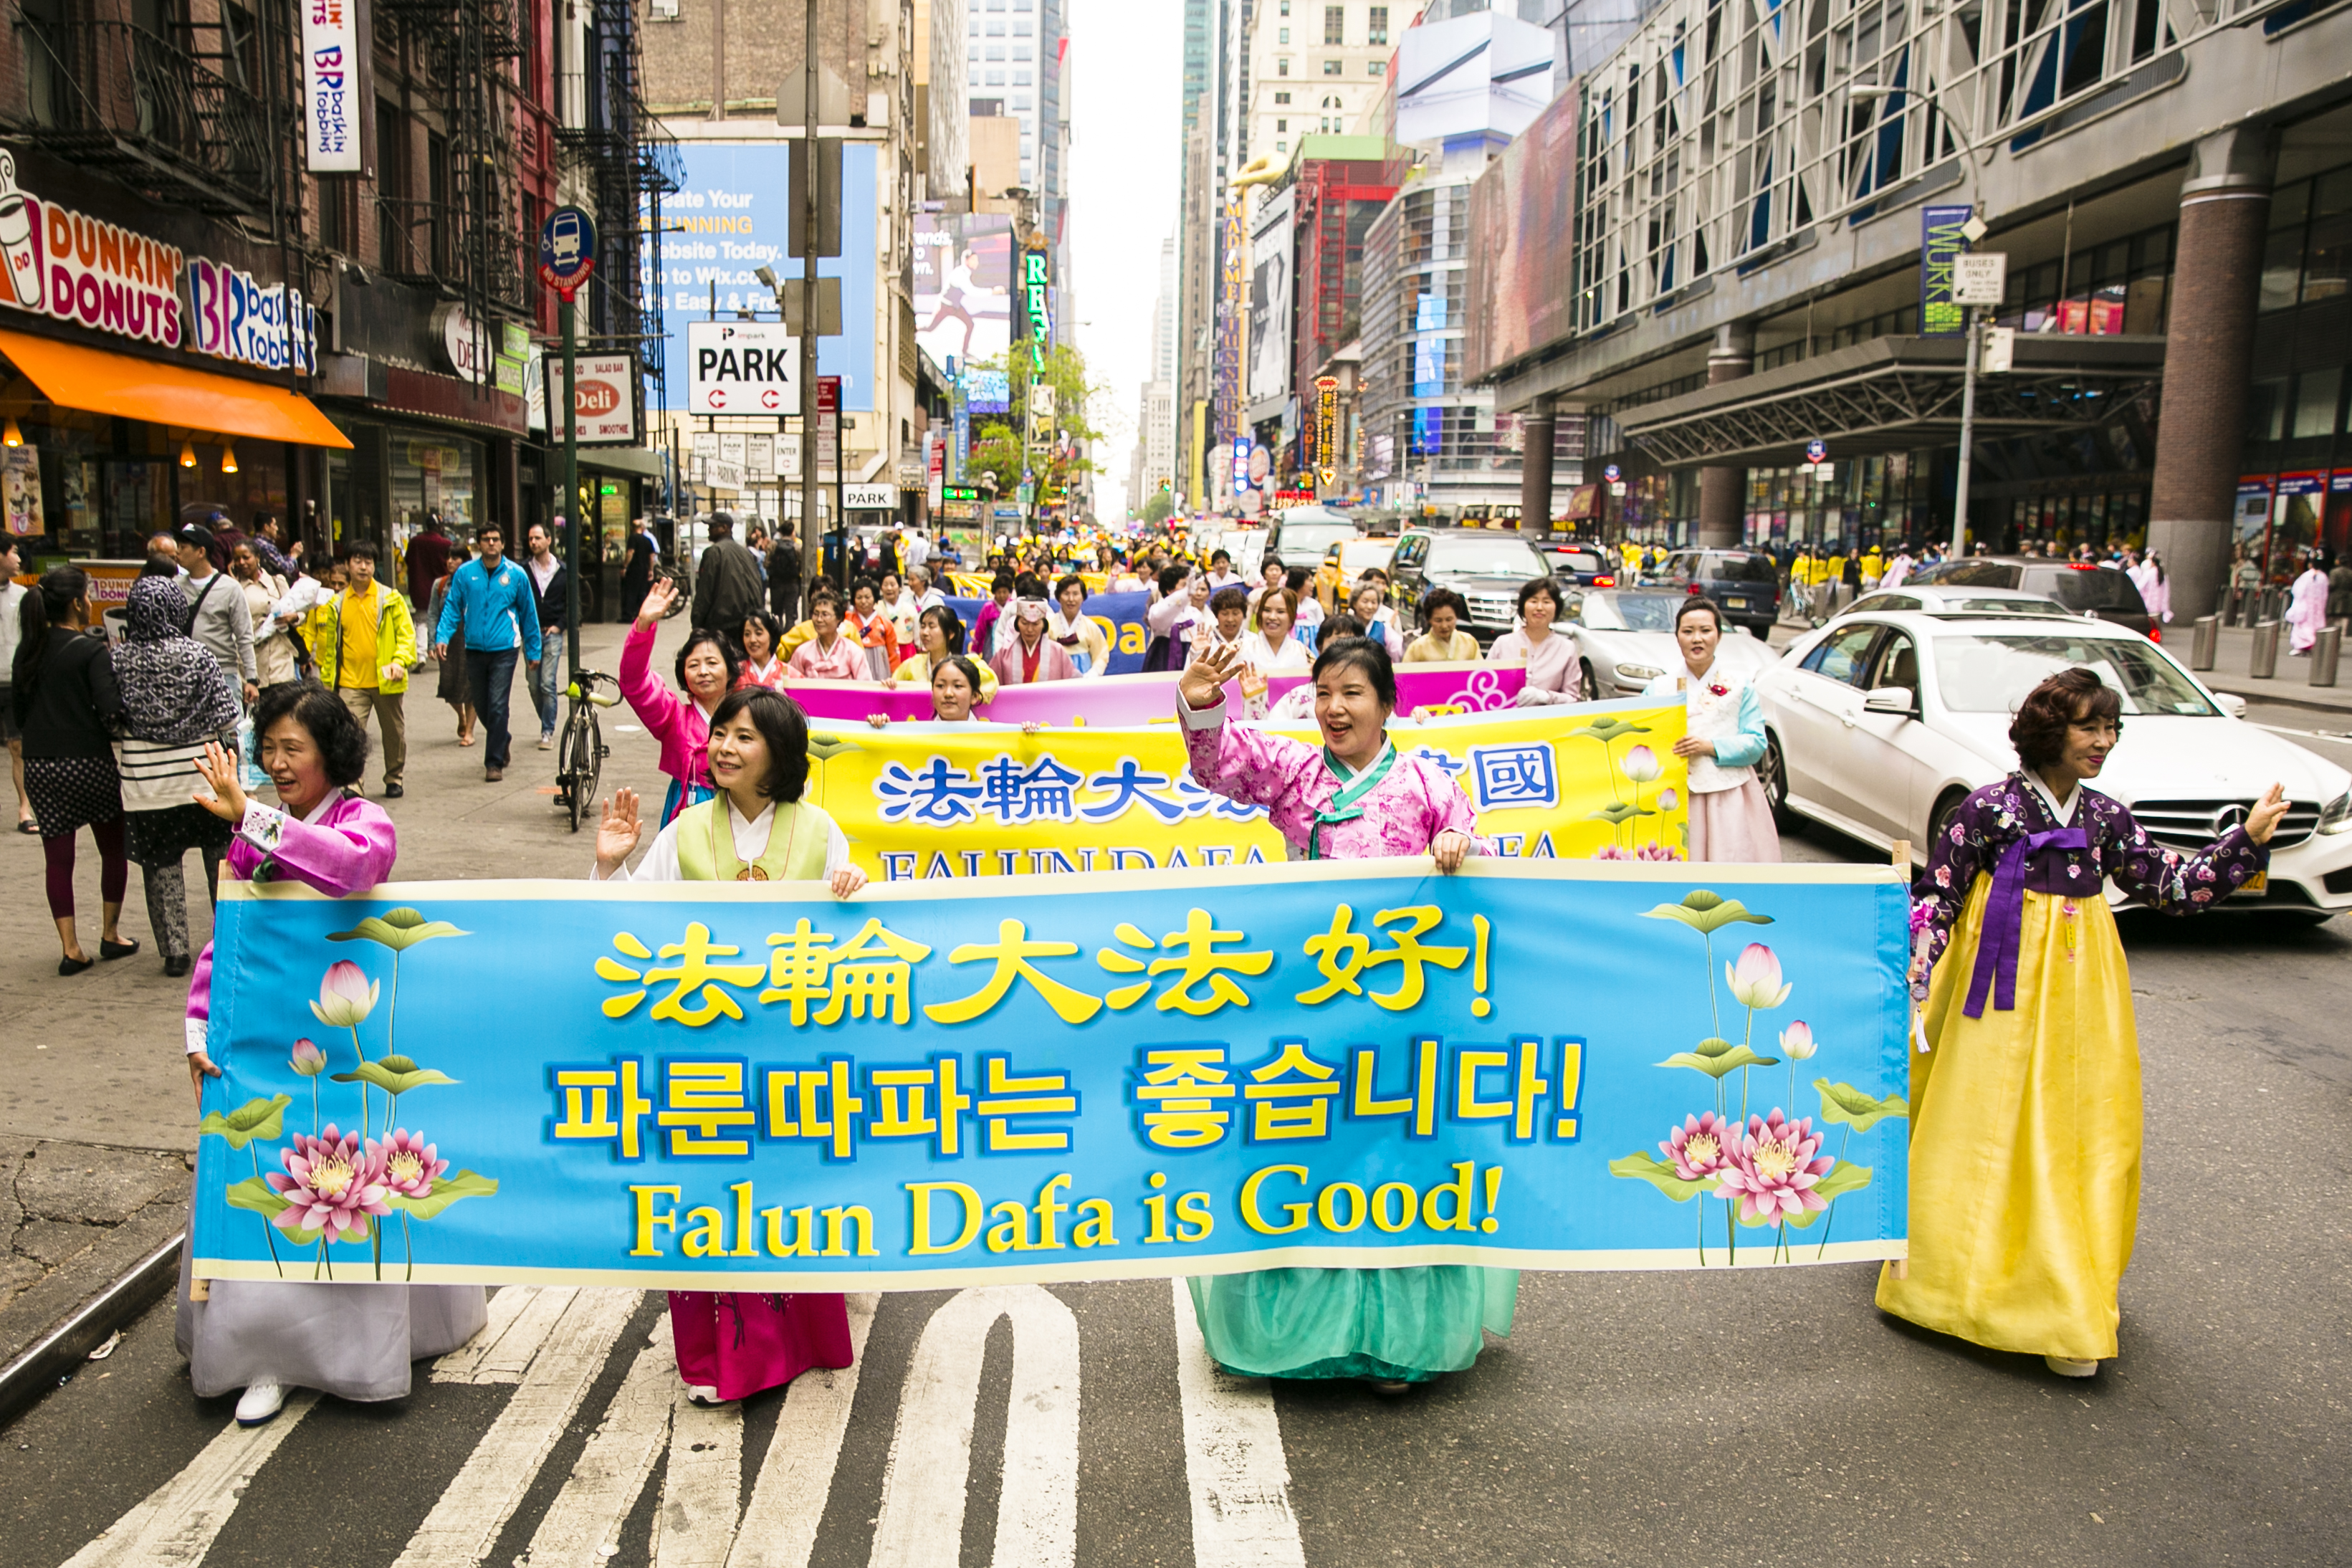 Around 10,000 Falun Gong practitioners march in the World Falun Dafa parade in New York on May 13, 2016. (Samira Bouaou/Epoch Times)